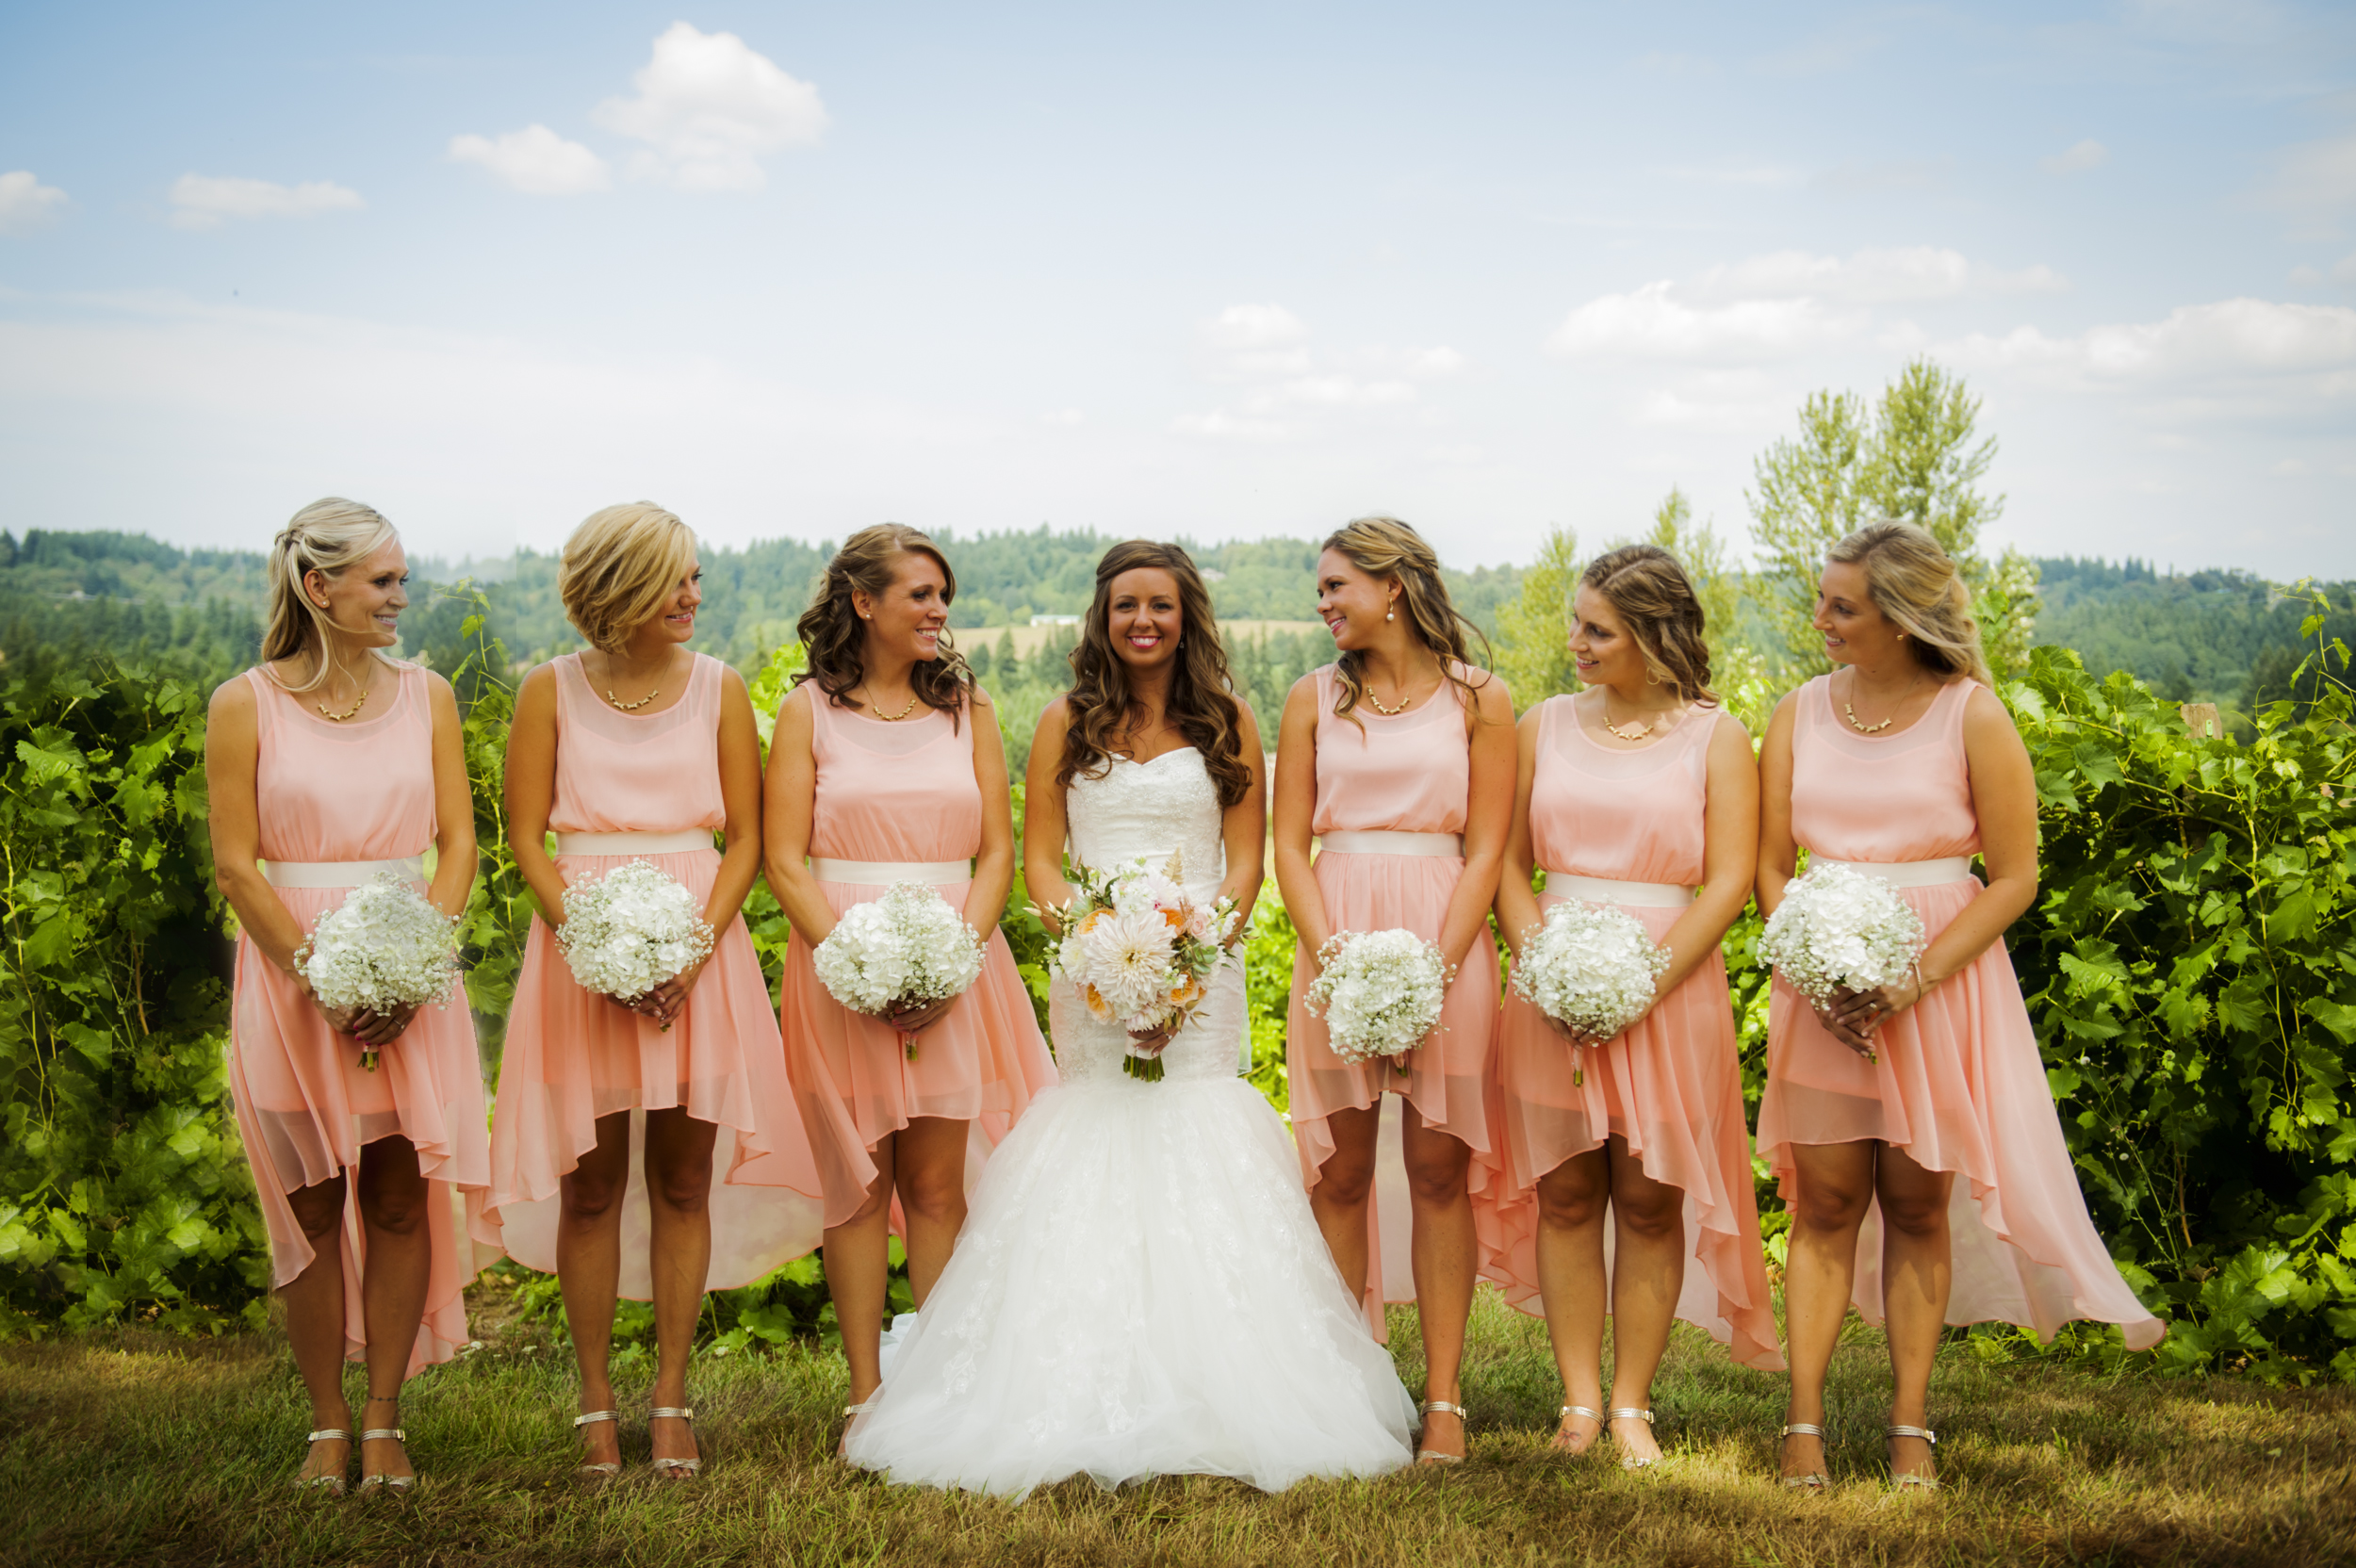 Portrait of bride and bridesmaids at Kings Raven Vineyard by Ripe Photography.